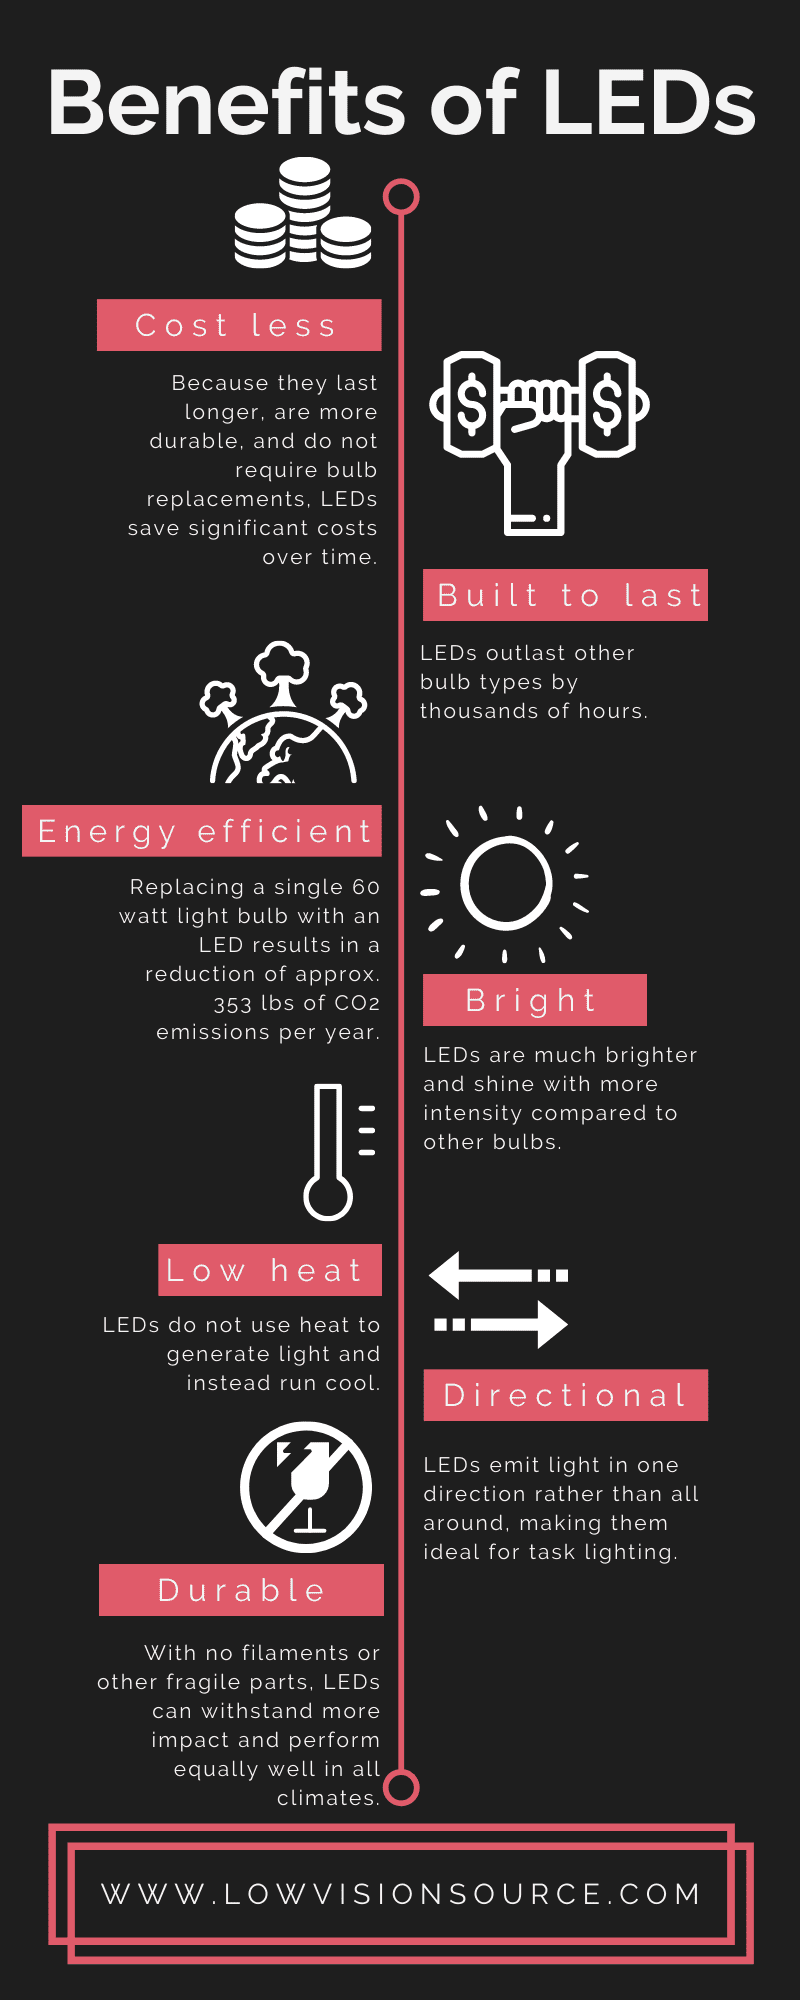 Benefits of LEDs Infographic